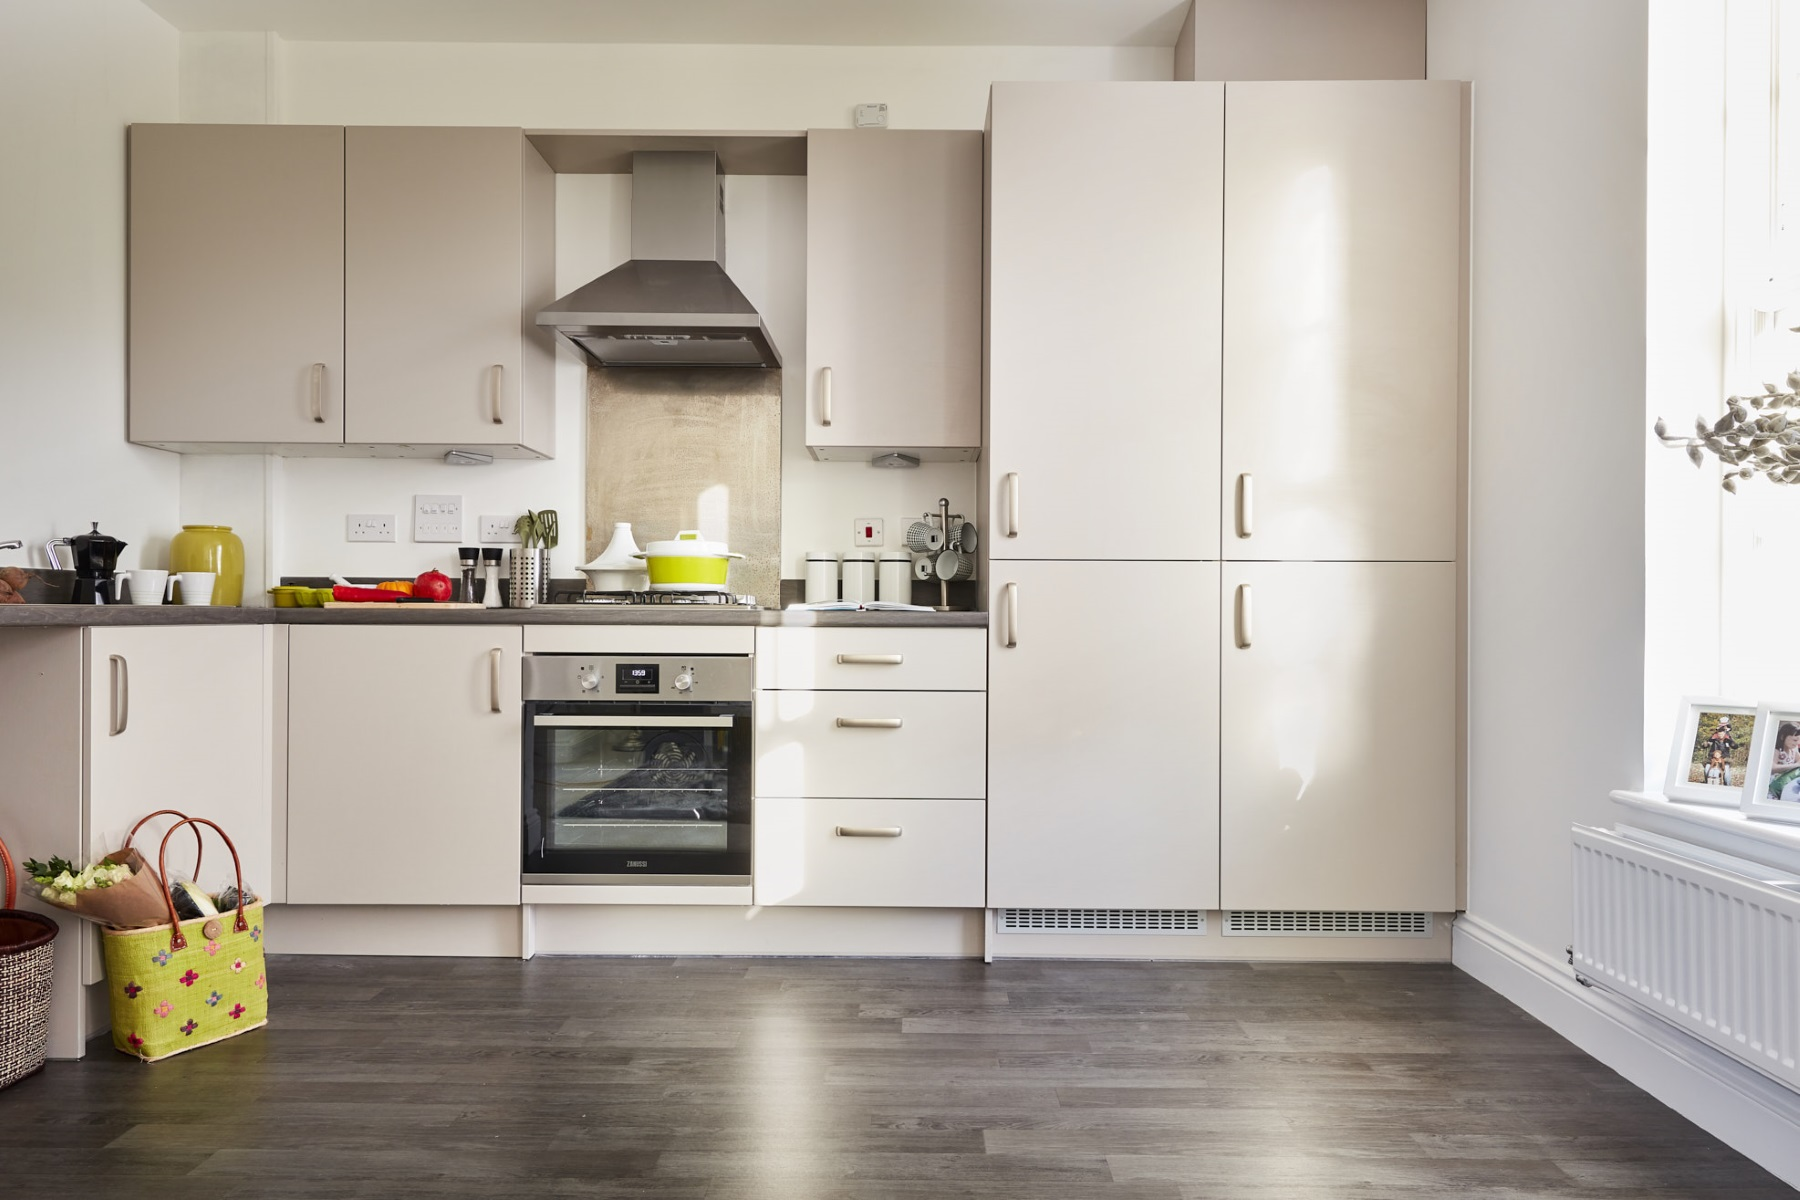 TW Exeter - Sherford - The Aspen example kitchen